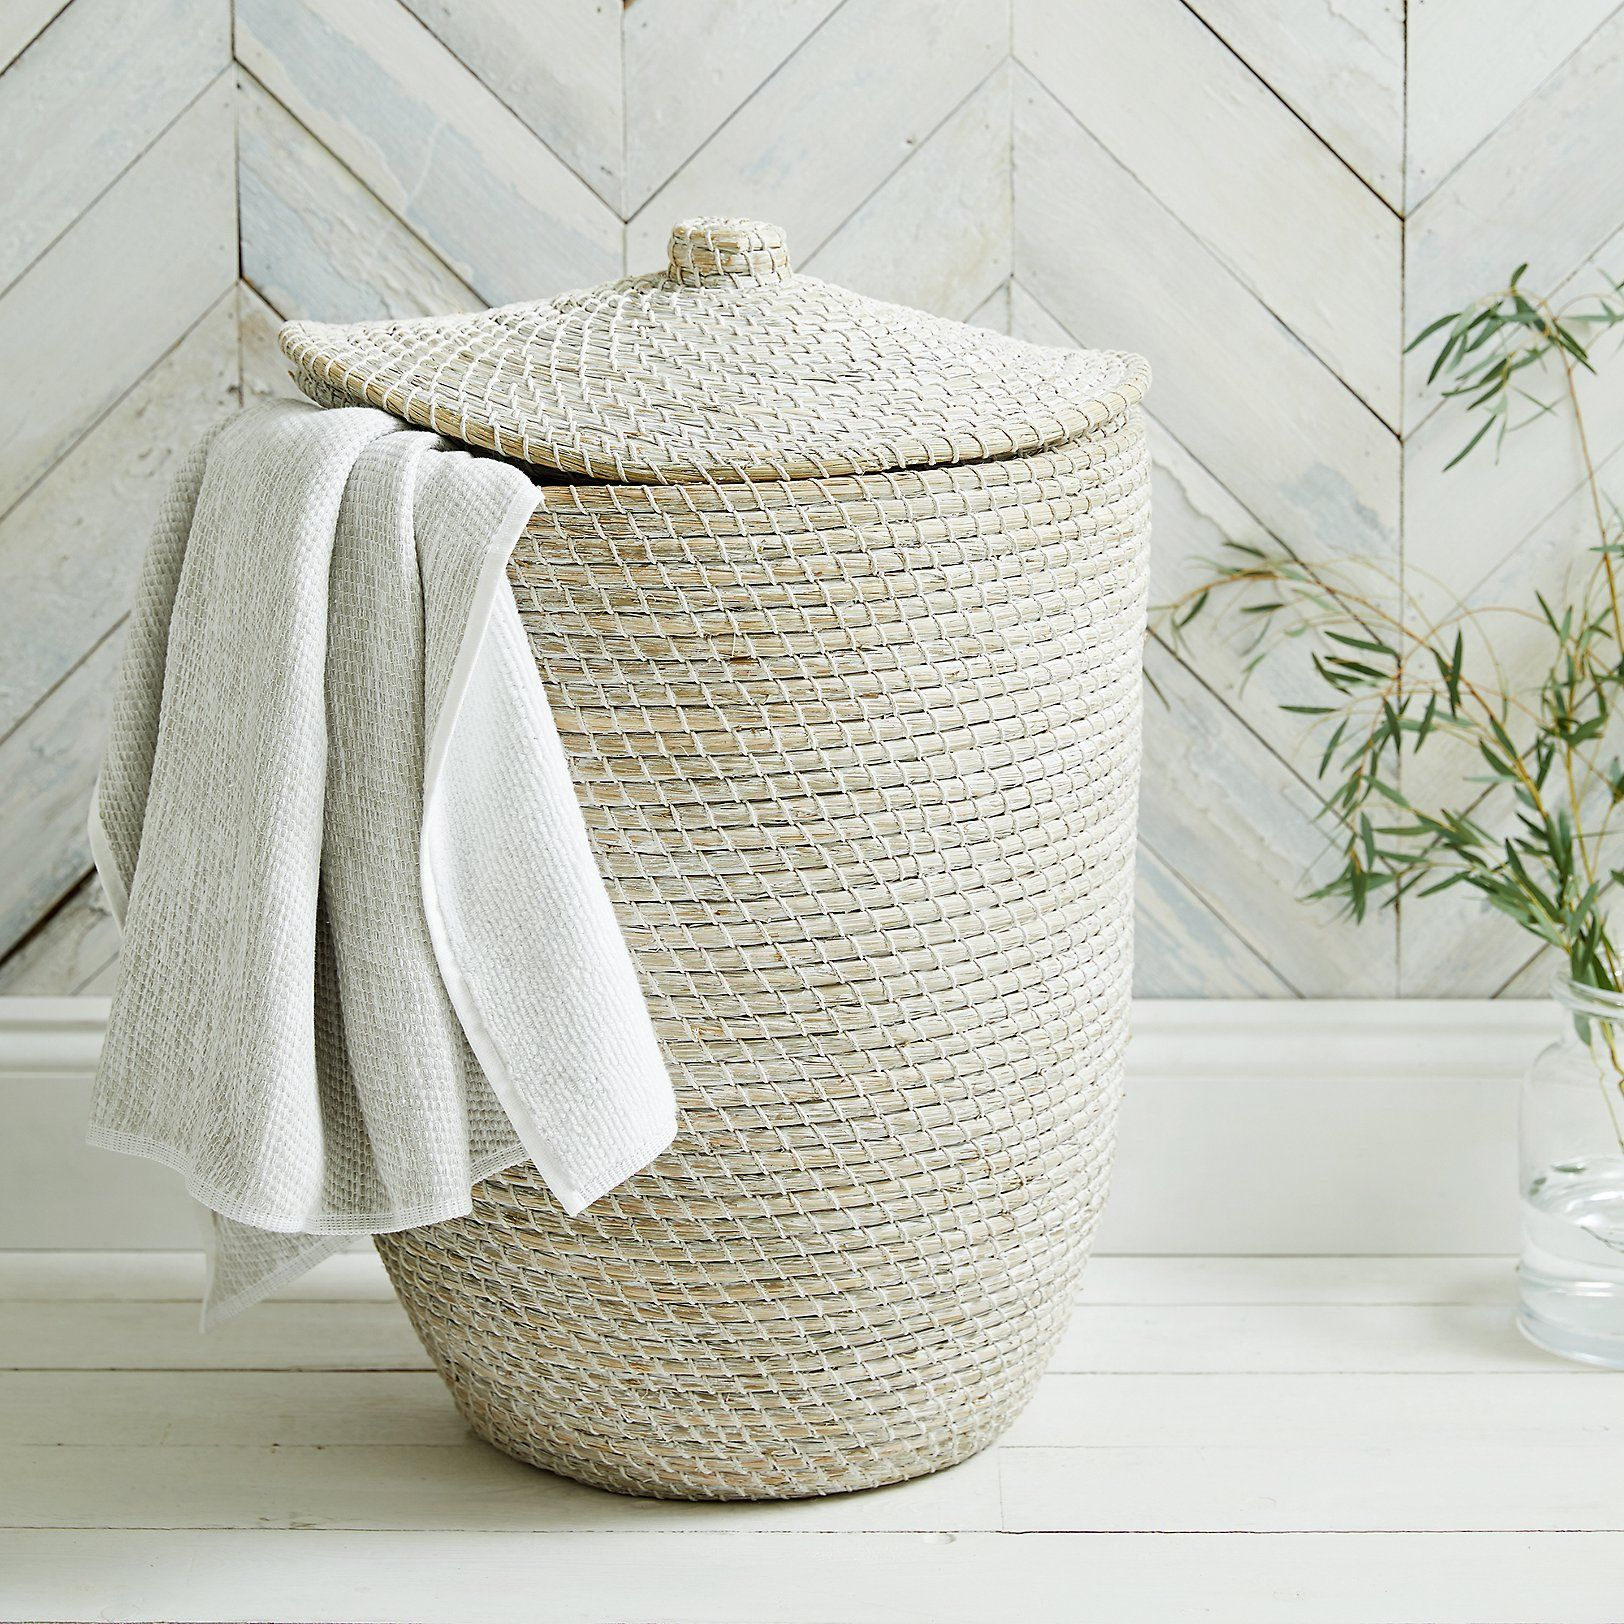 Alibaba Laundry Basket Laundry Storage Home Accessories